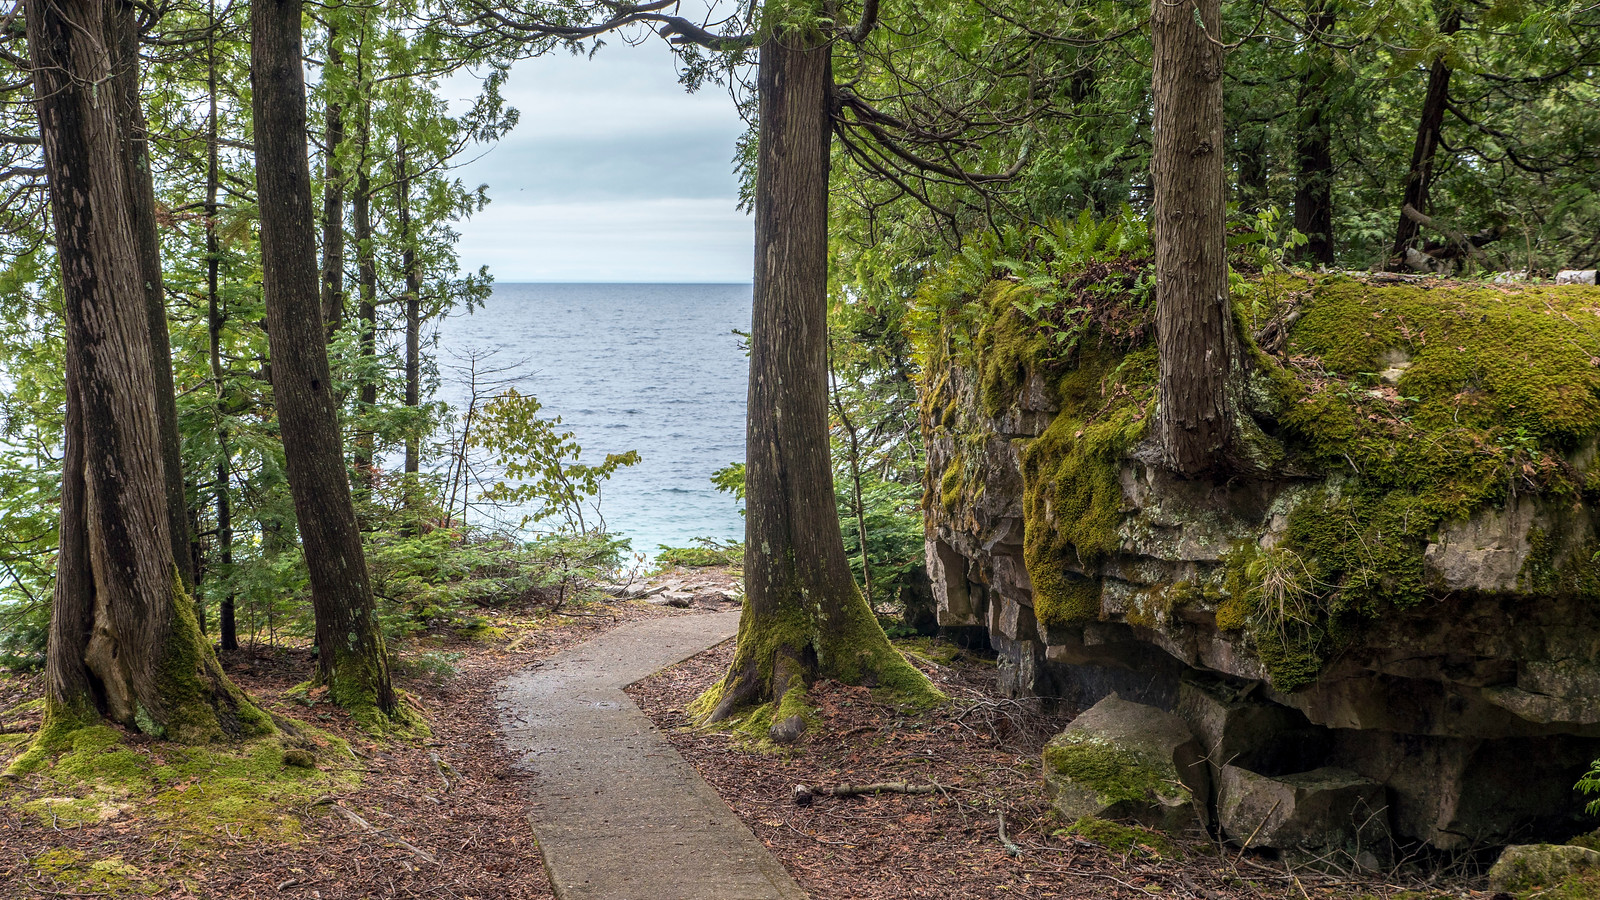 Hiking at Flowerpot Island, Bruce Peninsula, Fathom Five National Marine Park. Best Bruce Peninsula Hiking Trails for Nature Lovers